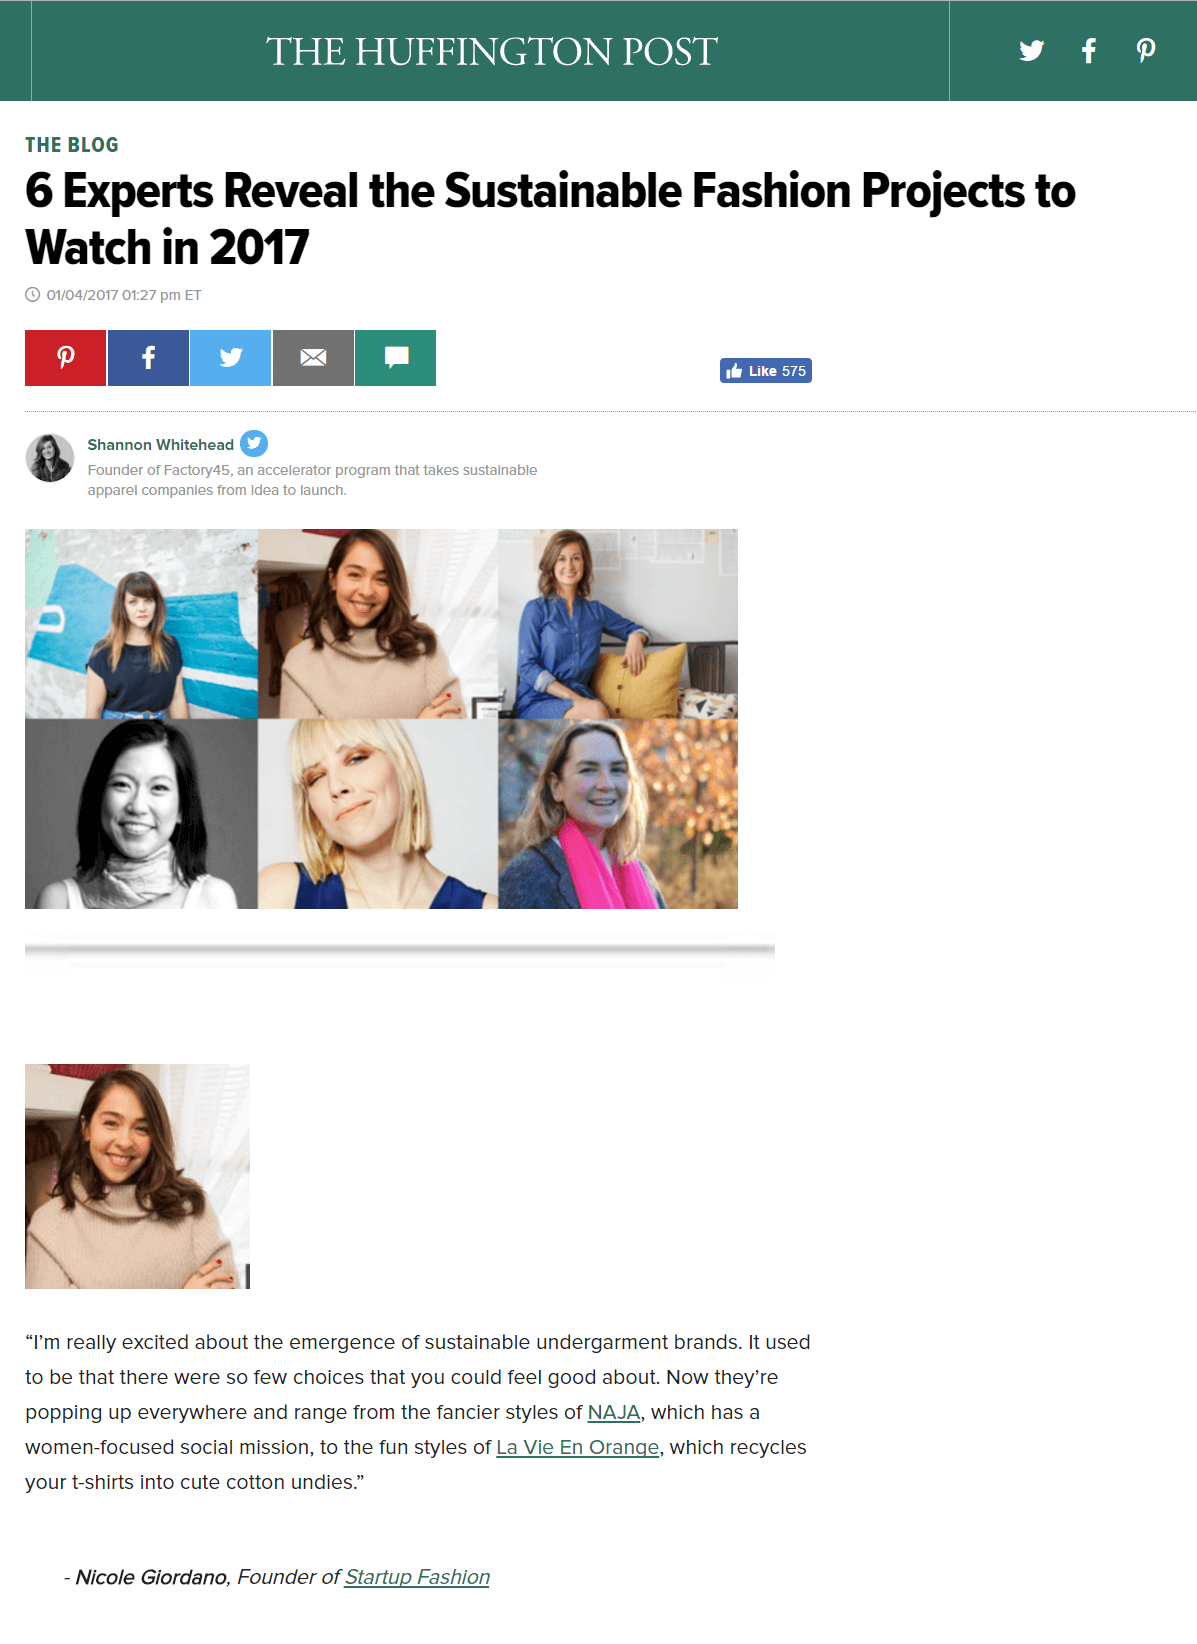 Huffington Post | 6 Experts Reveal the Sustainable Fashion Projects to Watch in 2017